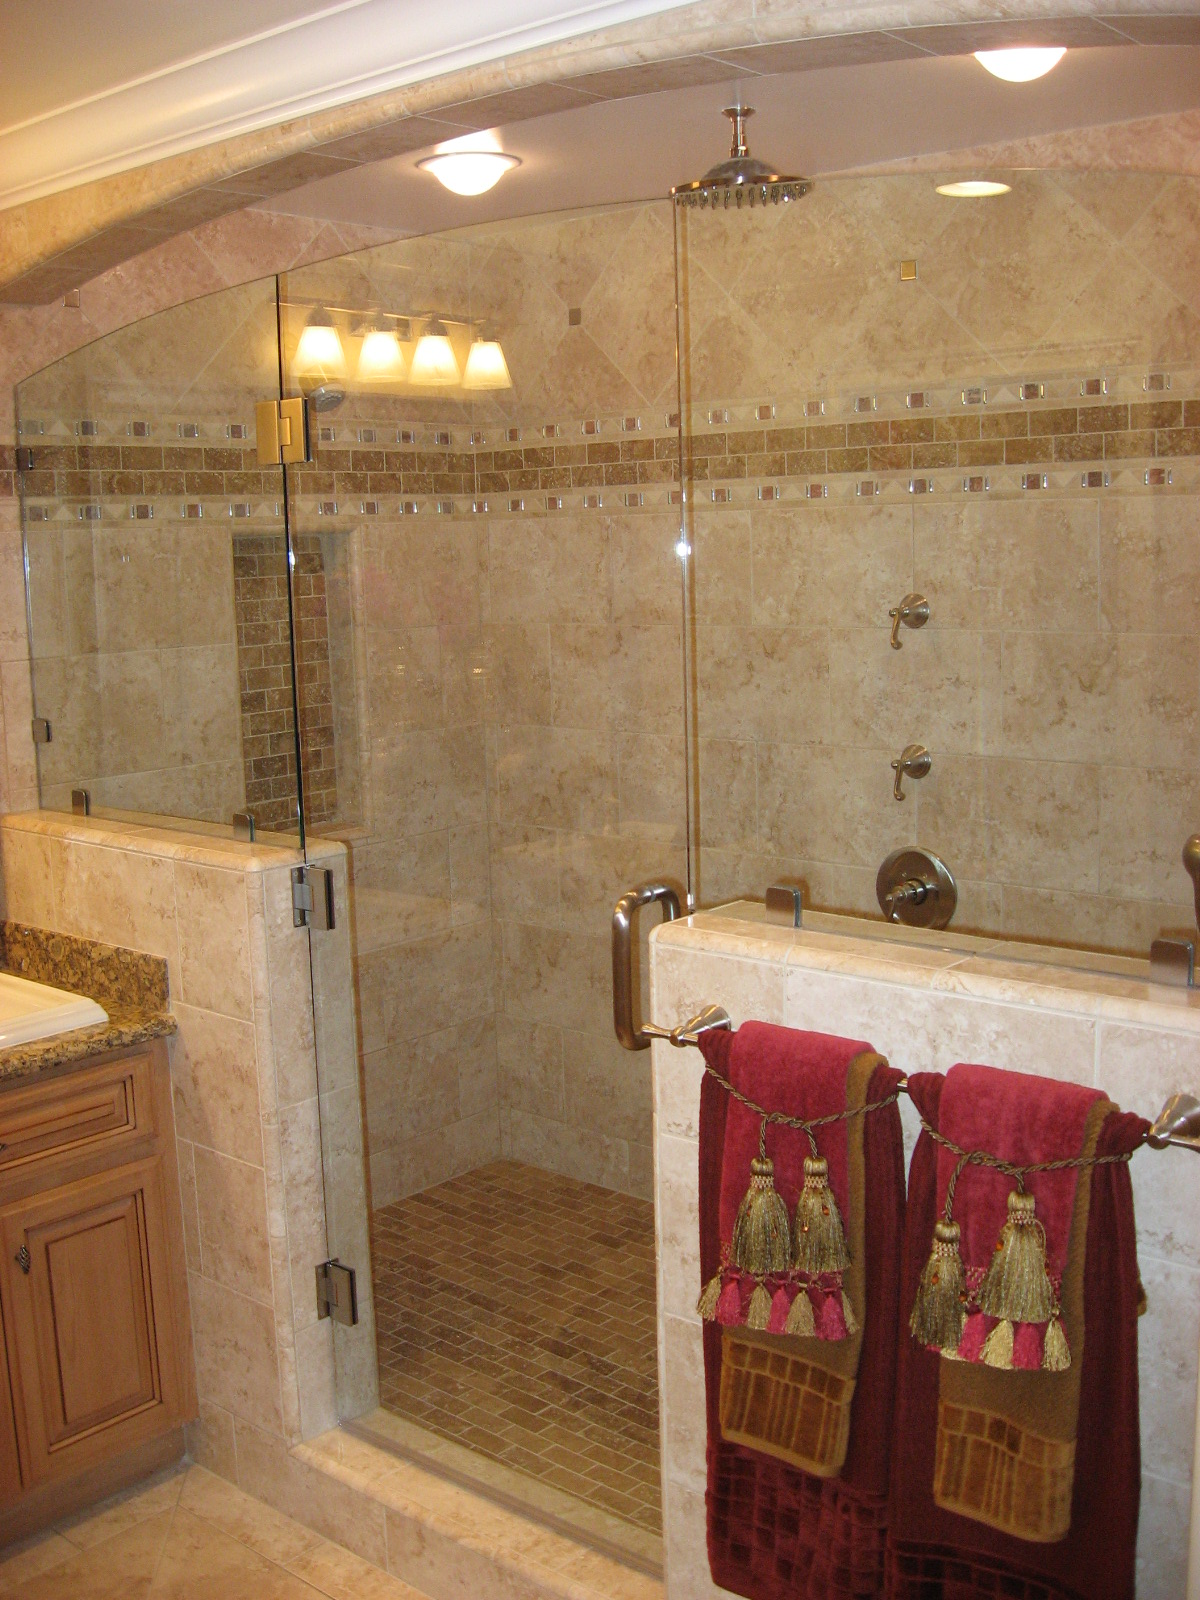 shower tile ideas small bathrooms. Small Bathroom Shower Tile Ideas Bathrooms